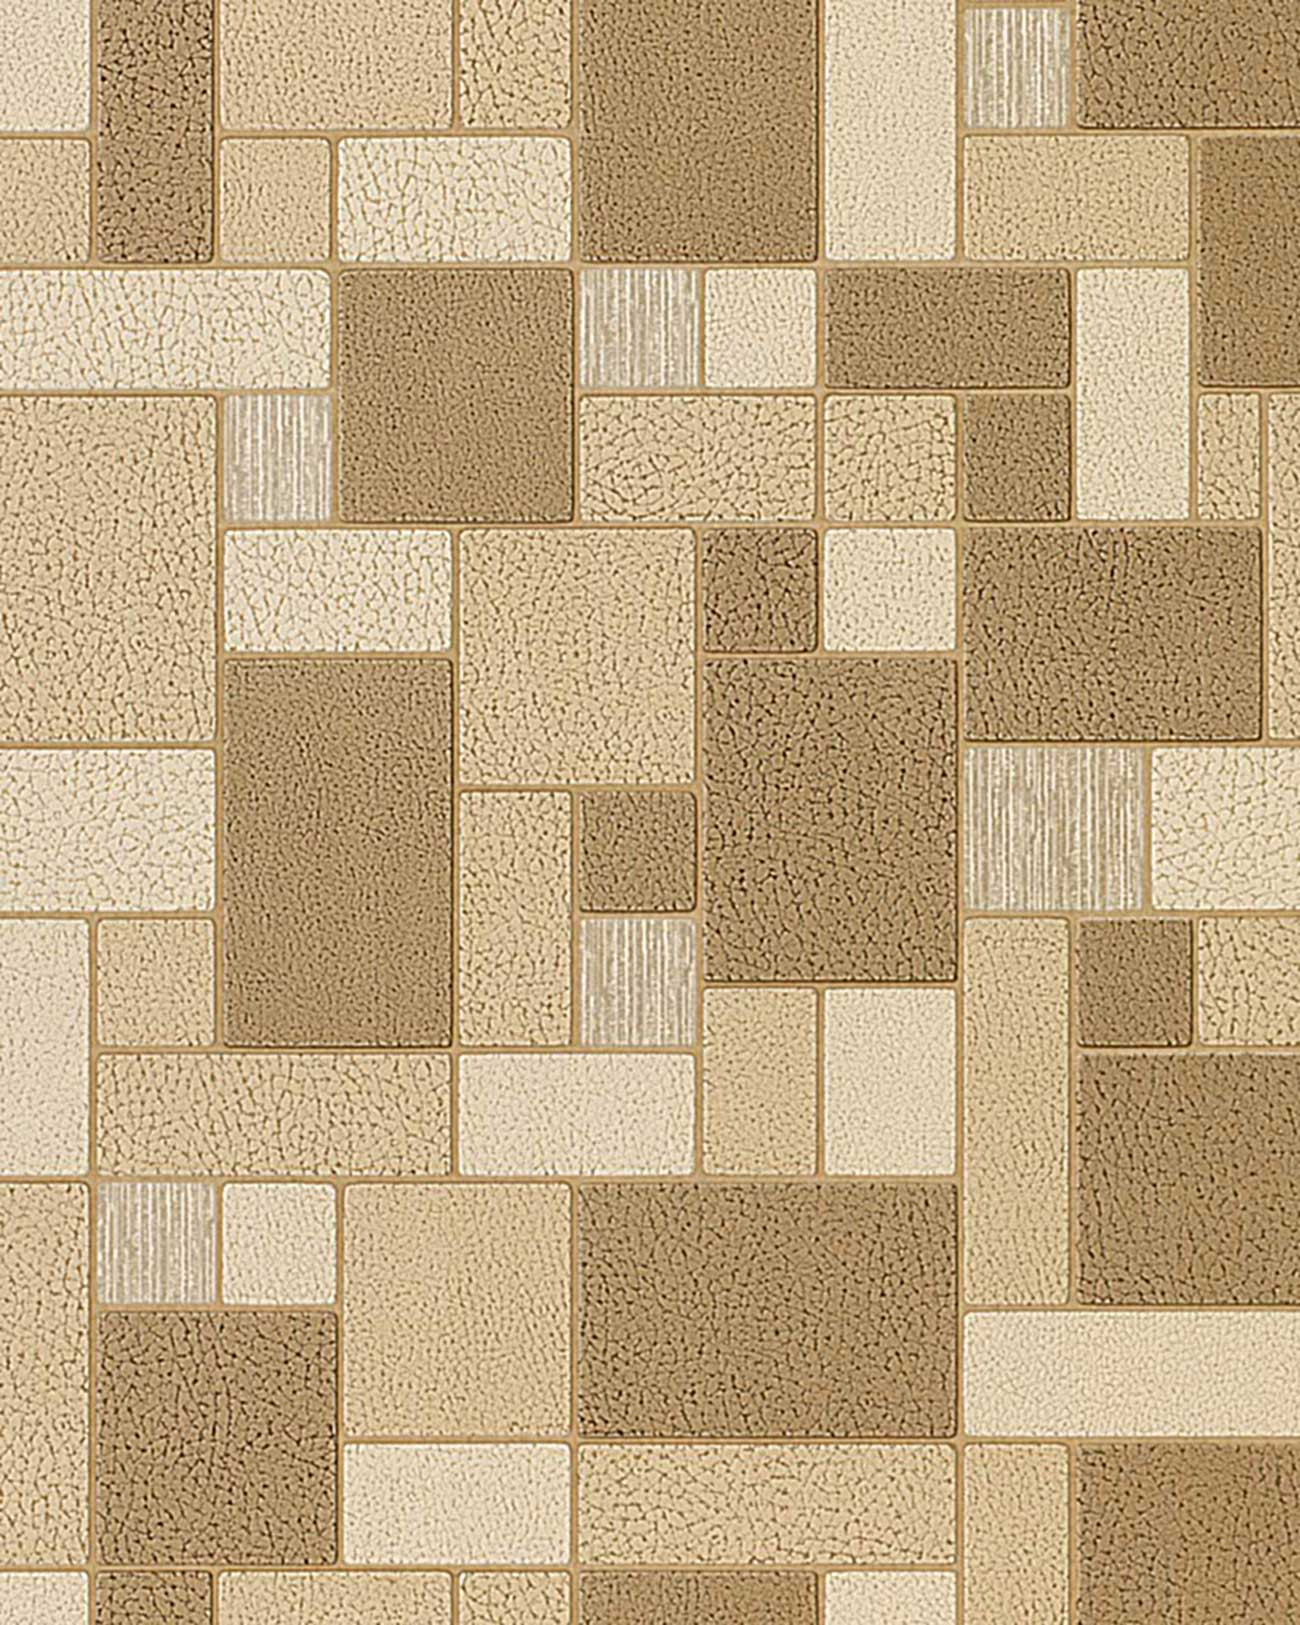 Keuken Behang Kopen : Brown Beige Mosaic Wall Tile